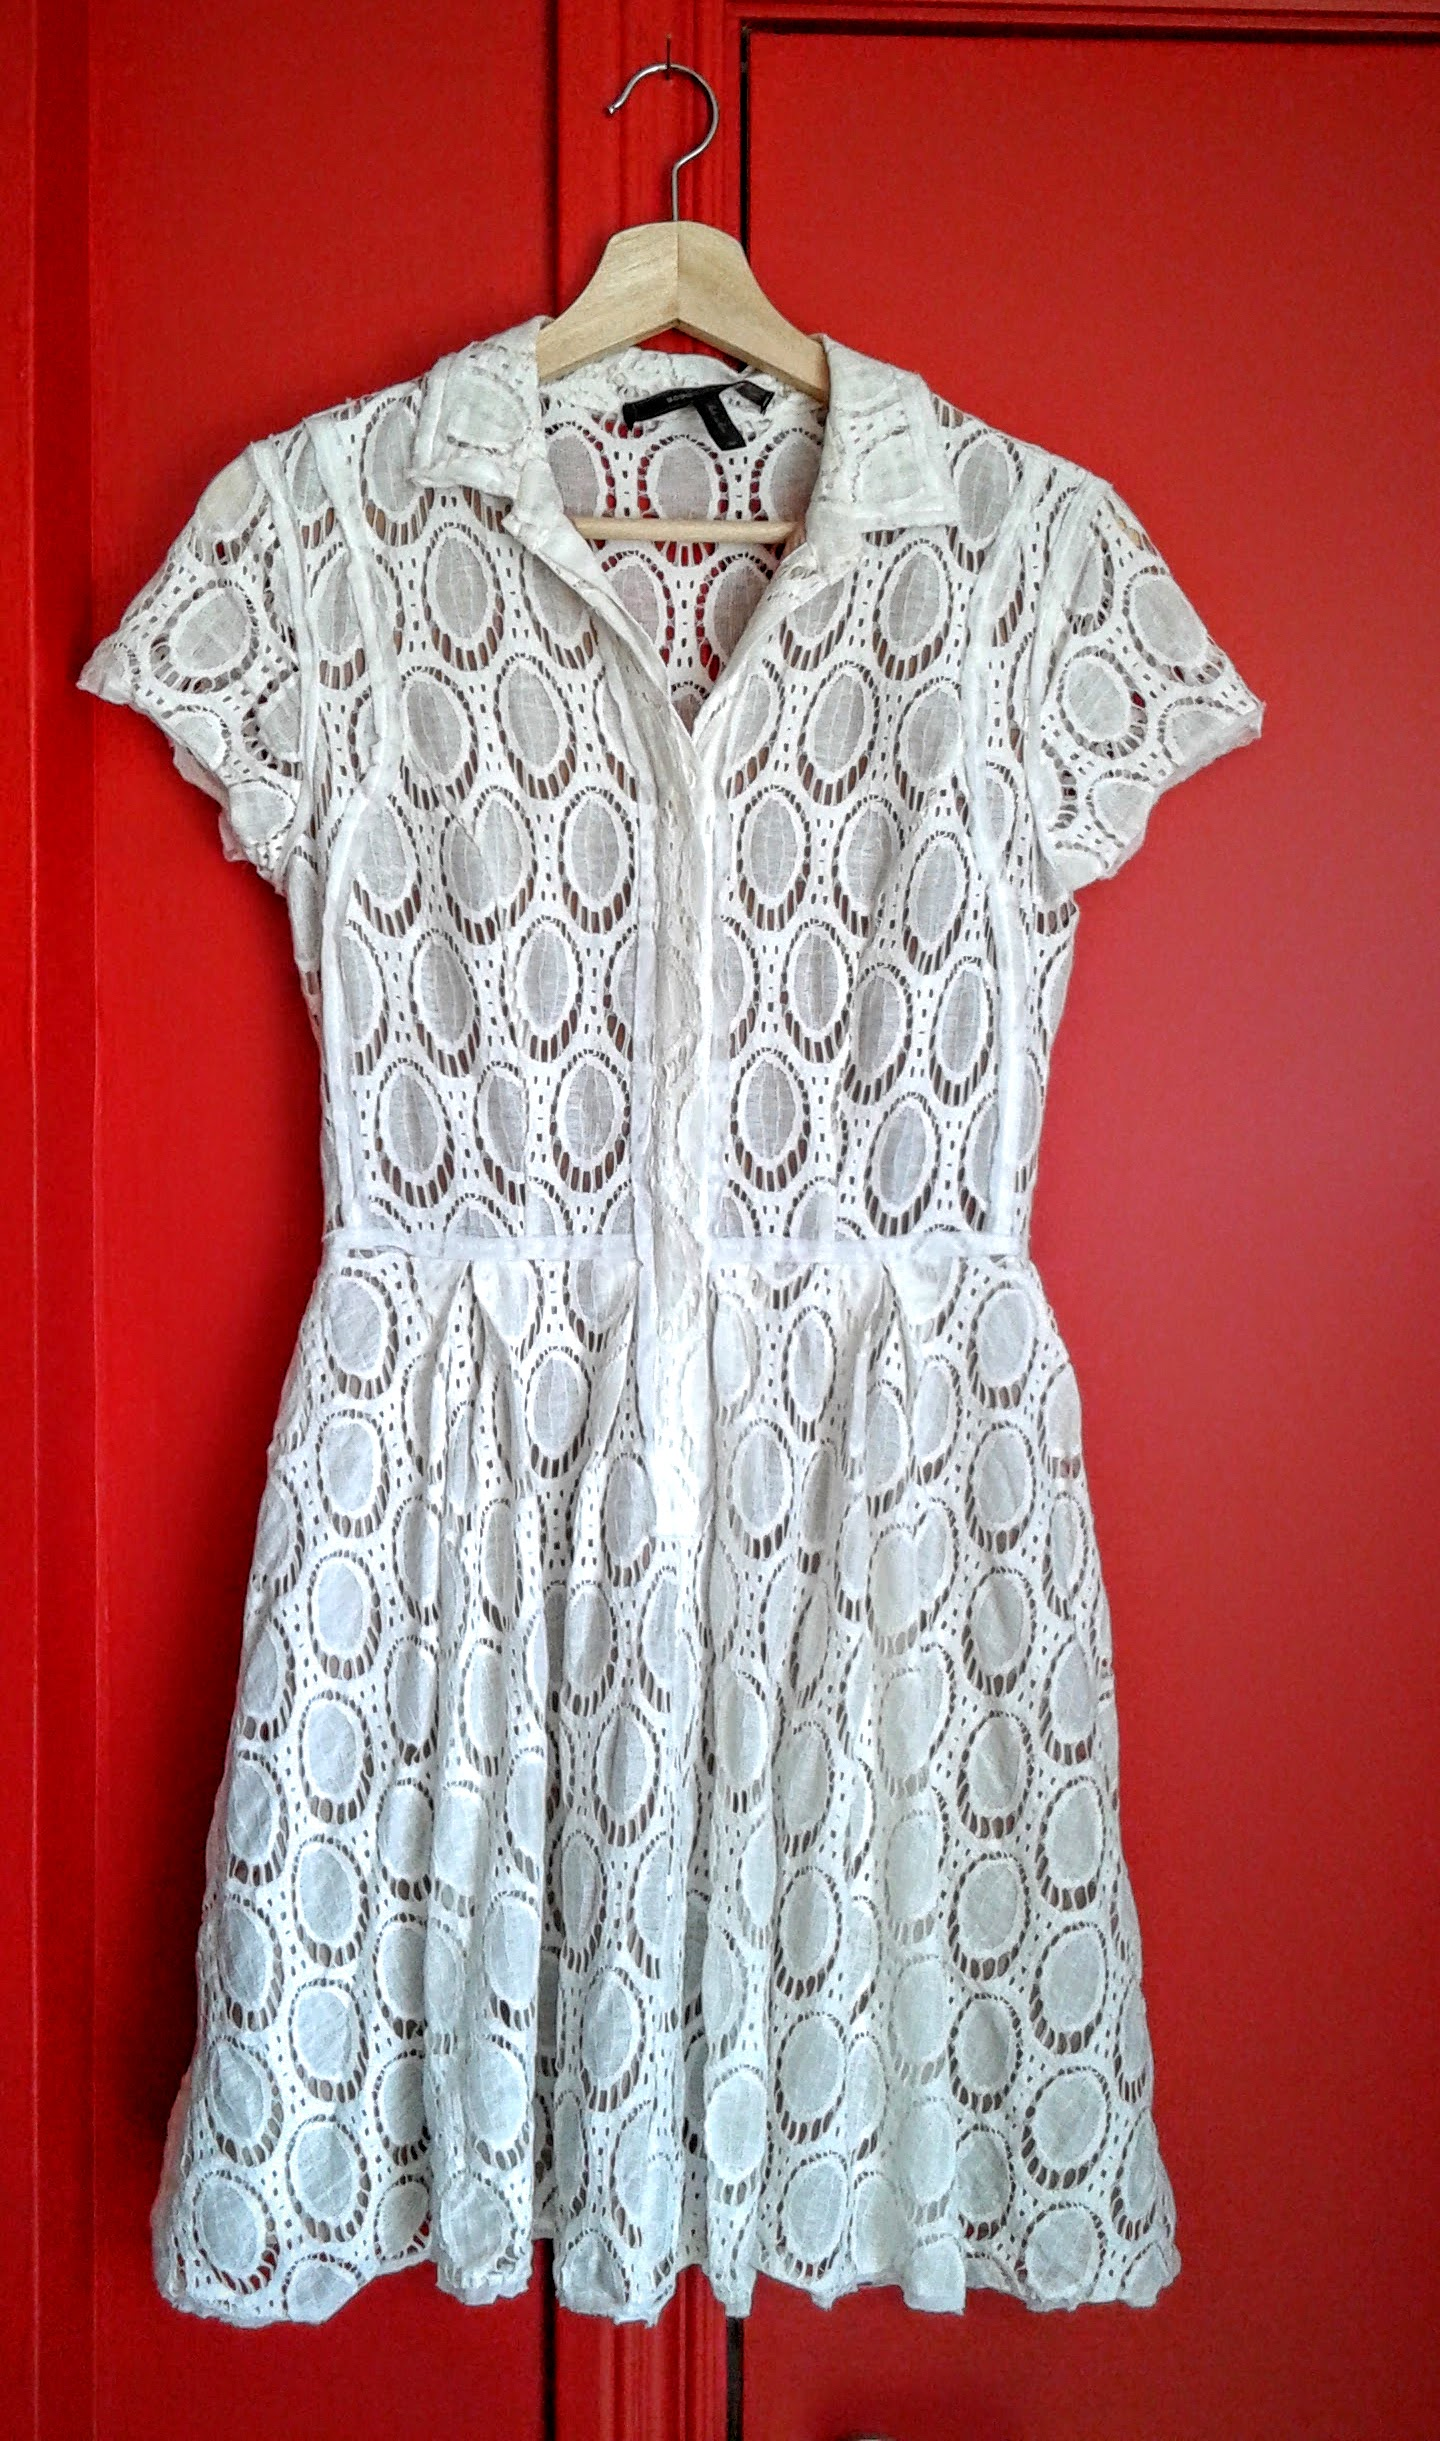 BCBG dress; Size S, $42